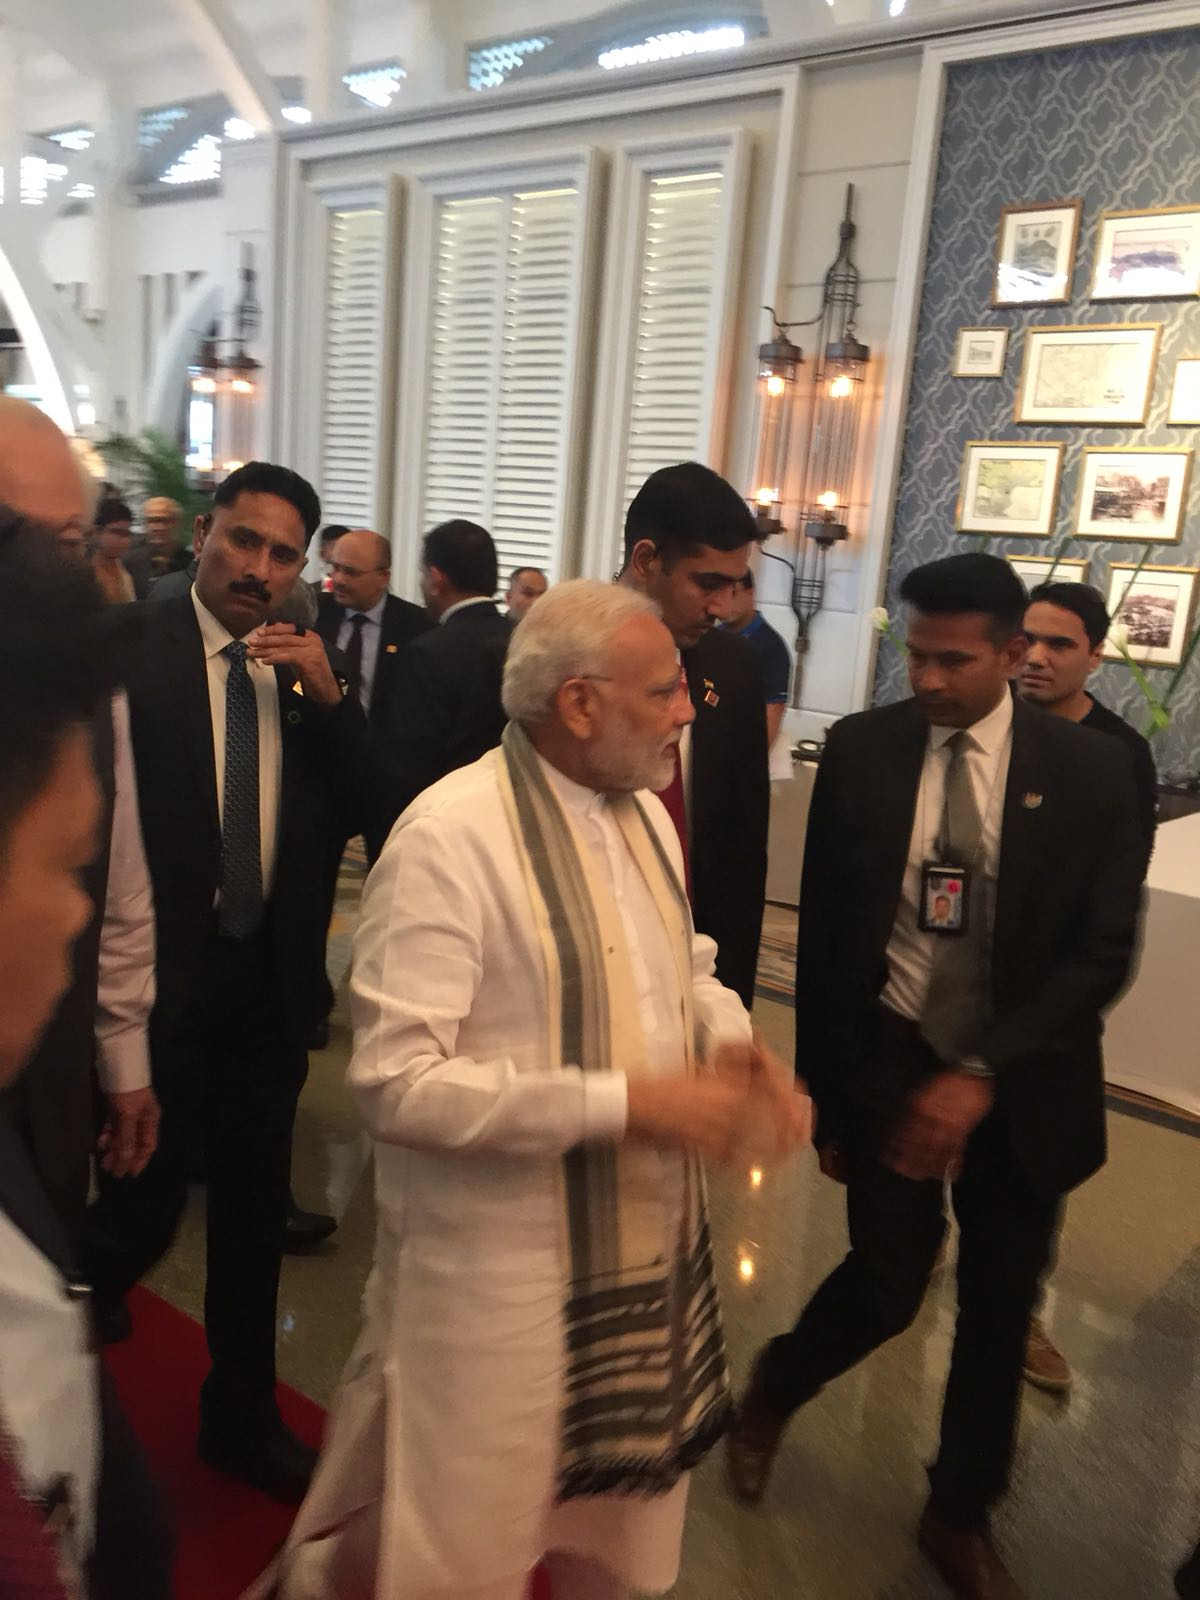 Indian Prime Minister Narendra Modi arriving at the Fullerton Hotel for the unveiling of plaque ceremony.